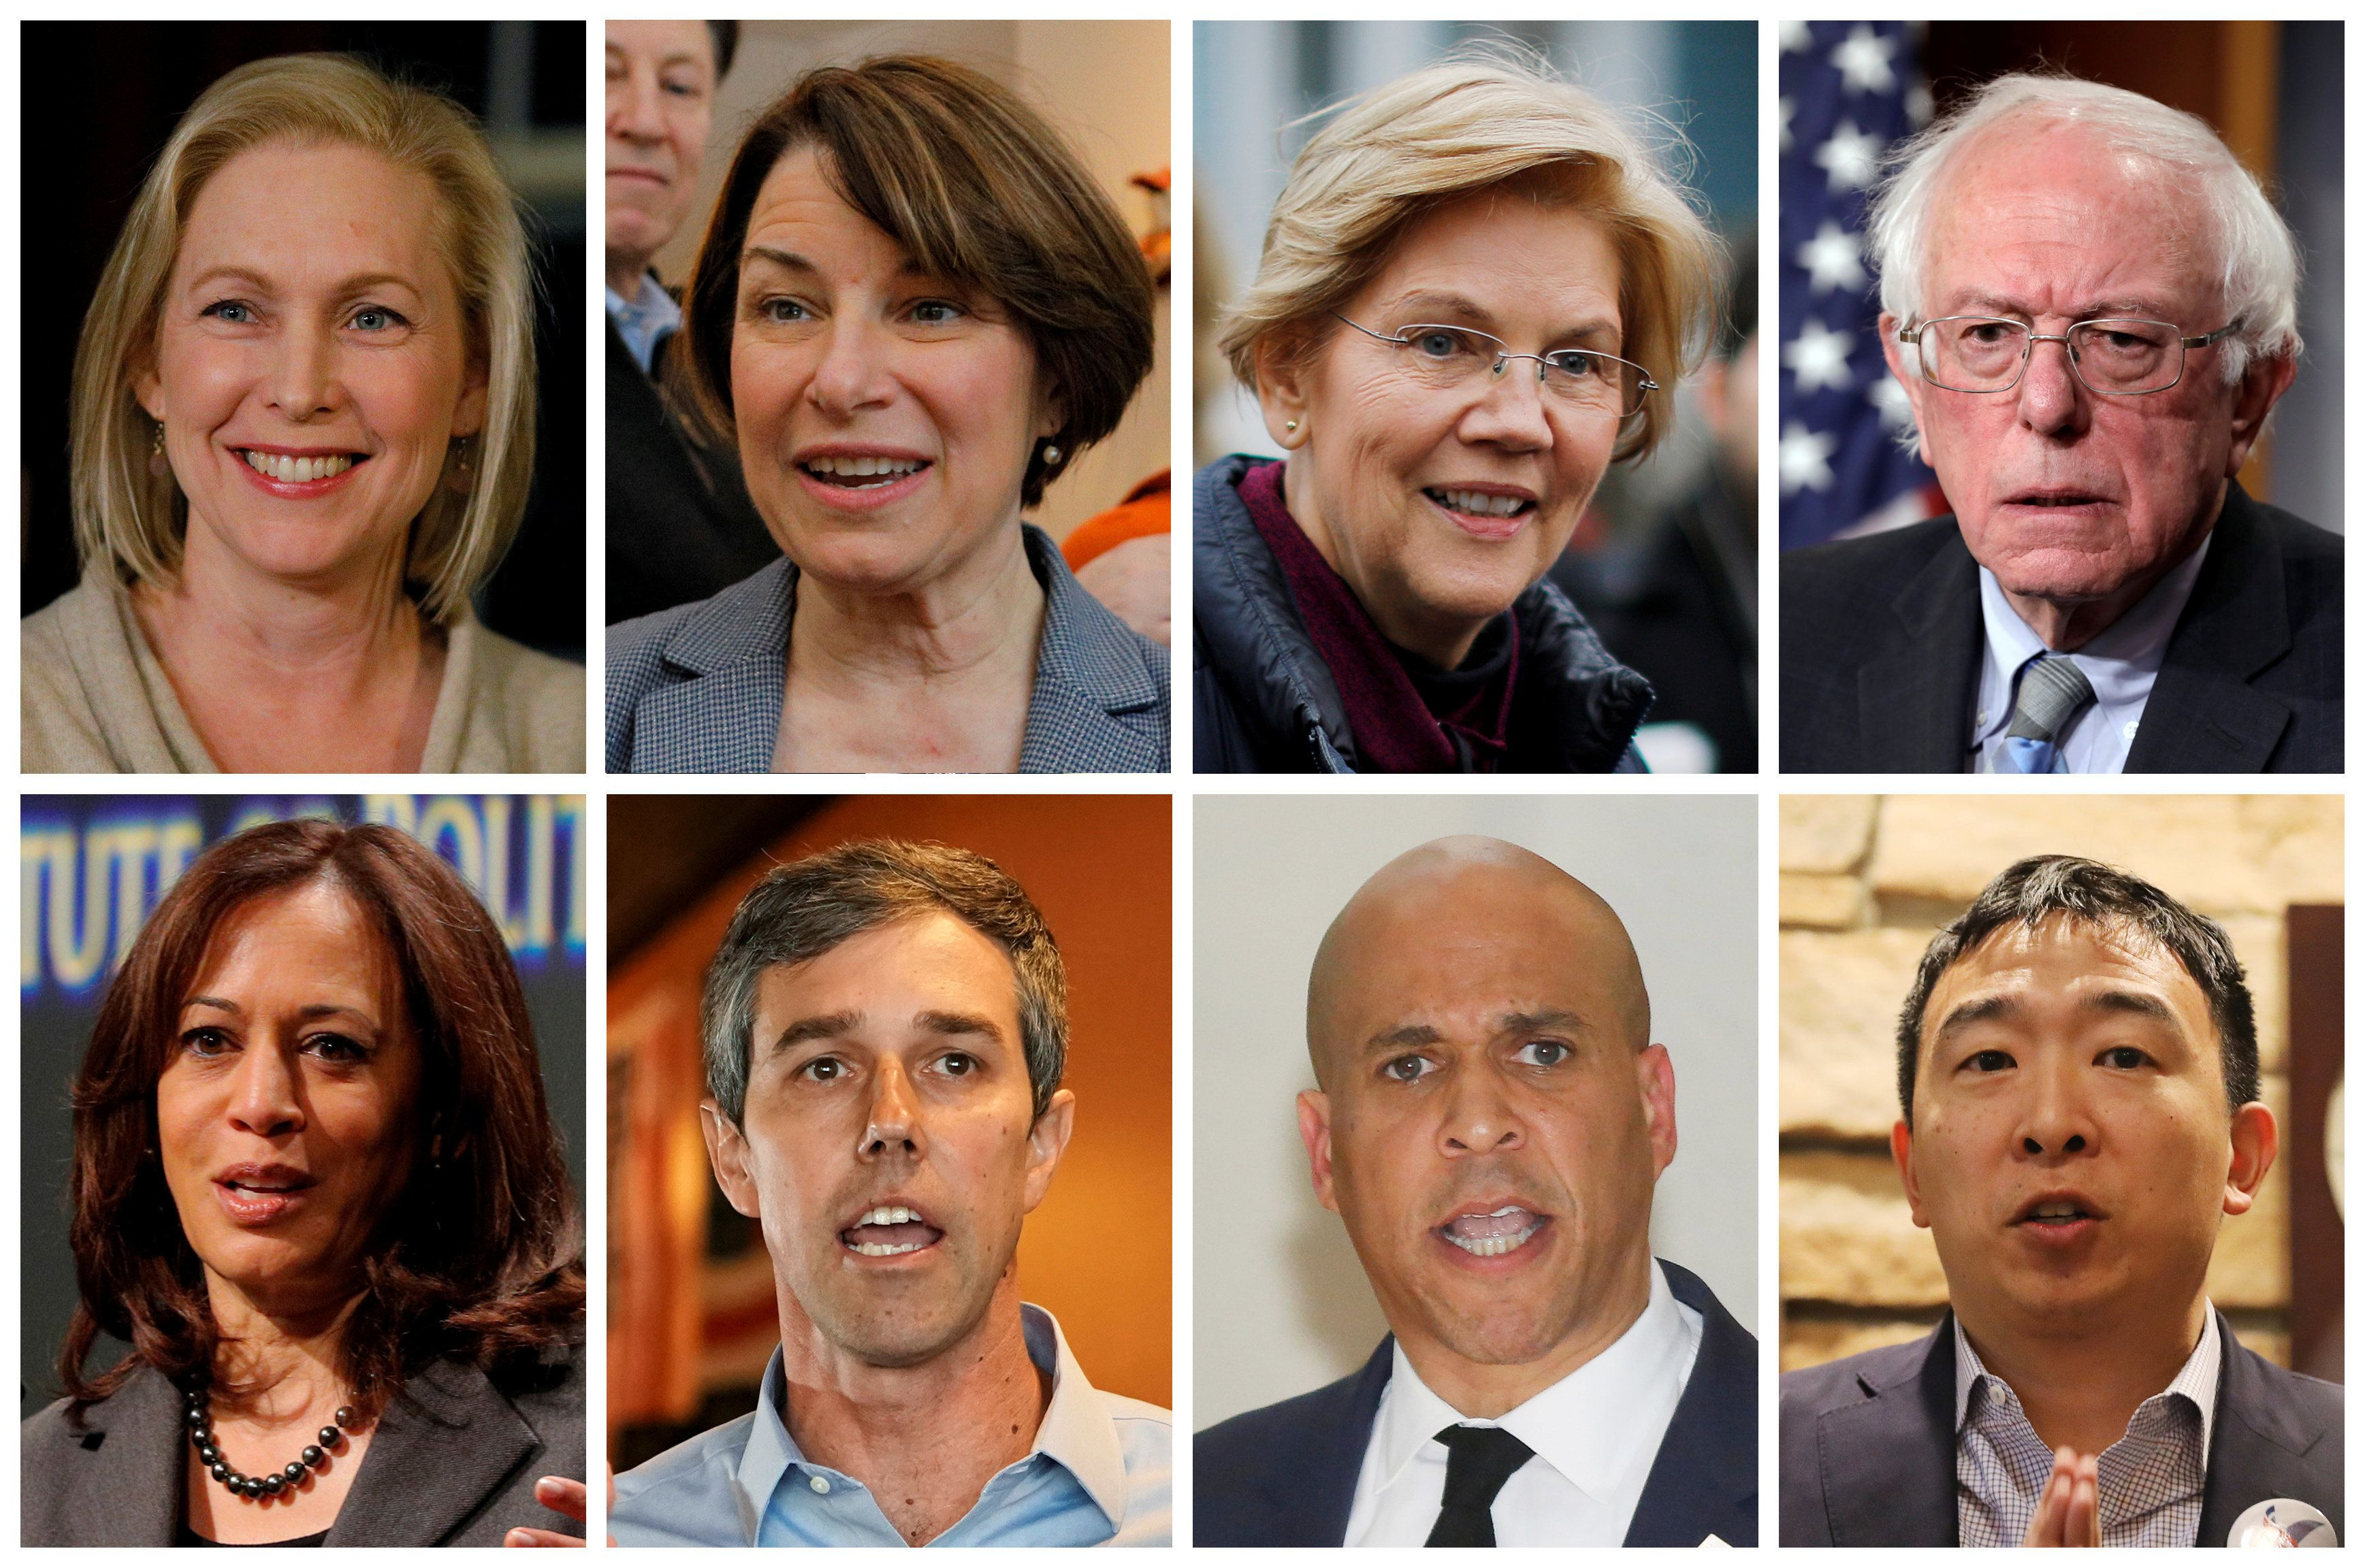 2020 Democratic presidential candidates are seen in a combination of file photos (L-R top row): U.S. Senators Kirsten Gillibrand, Amy Klobuchar, Elizabeth Warren, Bernie Sanders, (L-R bottom row): U.S.Senator Kamala Harris, Former Texas congressman Beto O'Rourke, U.S. Senator Cory Booker and Democratic presidential candidate Andrew Yang. REUTERS/Files